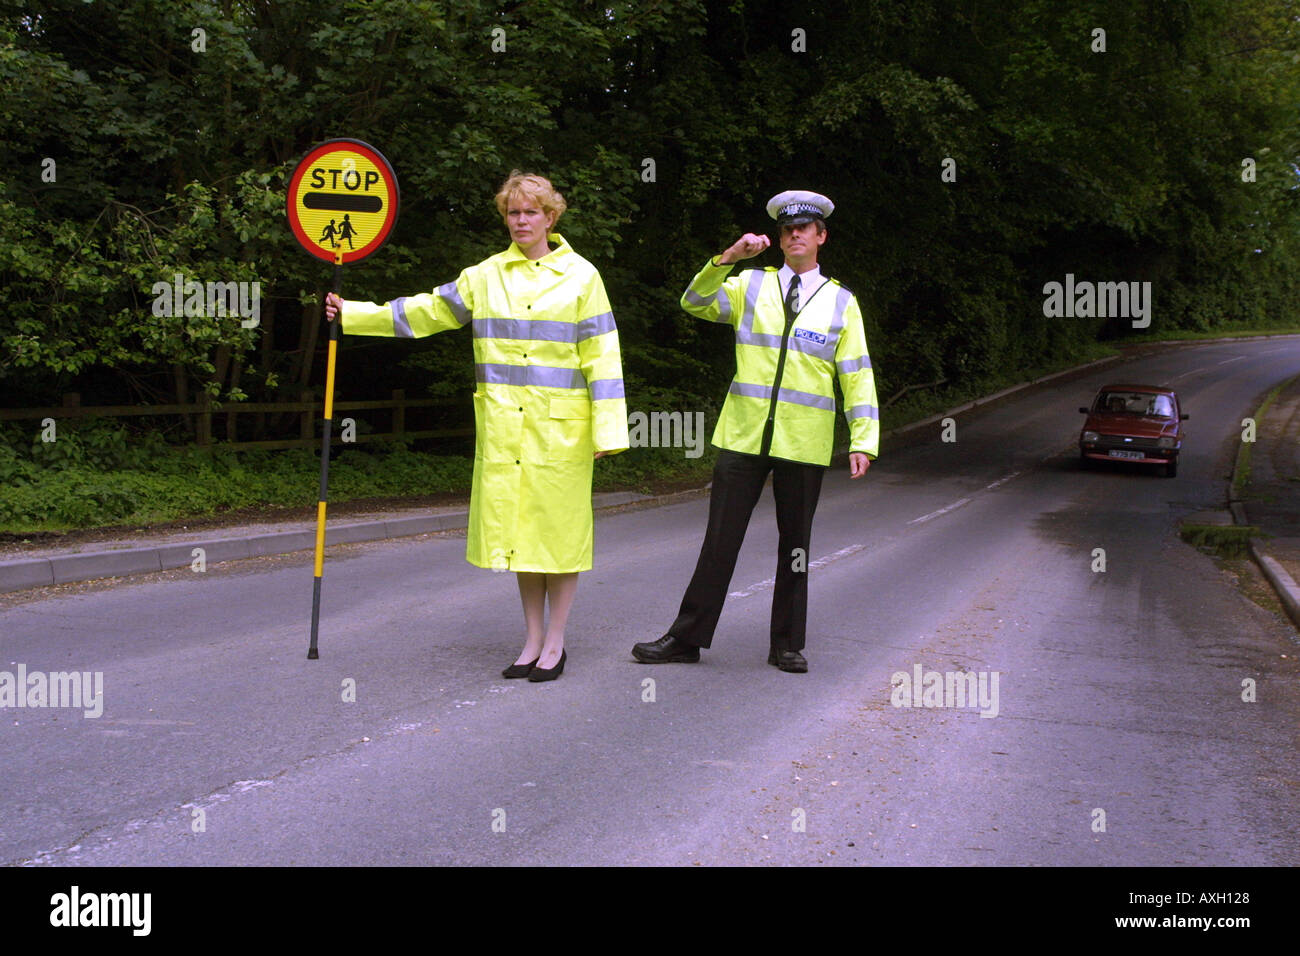 School crossing patrol woman with stop sign and police officer on the road. England UK European - Stock Image